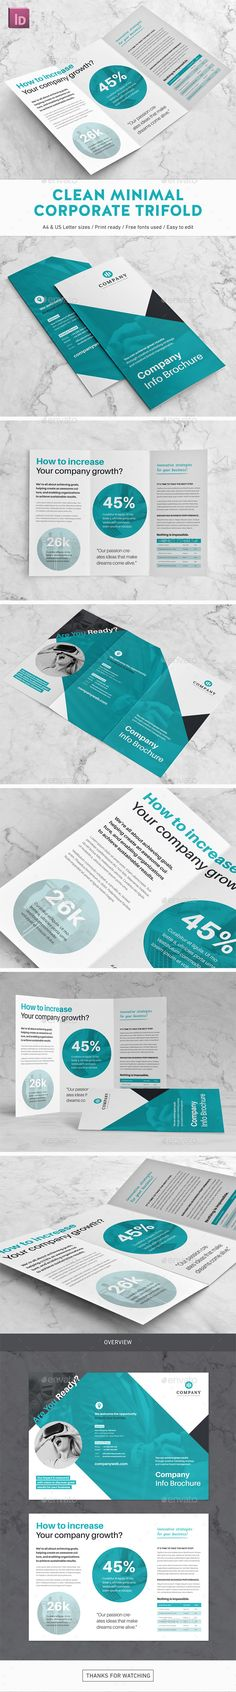 Clean Minimal Corporate Trifold Brochure - Corporate Brochures Download here : https://graphicriver.net/item/clean-minimal-corporate-trifold-brochure/19425211?s_rank=149&ref=Al-fatih